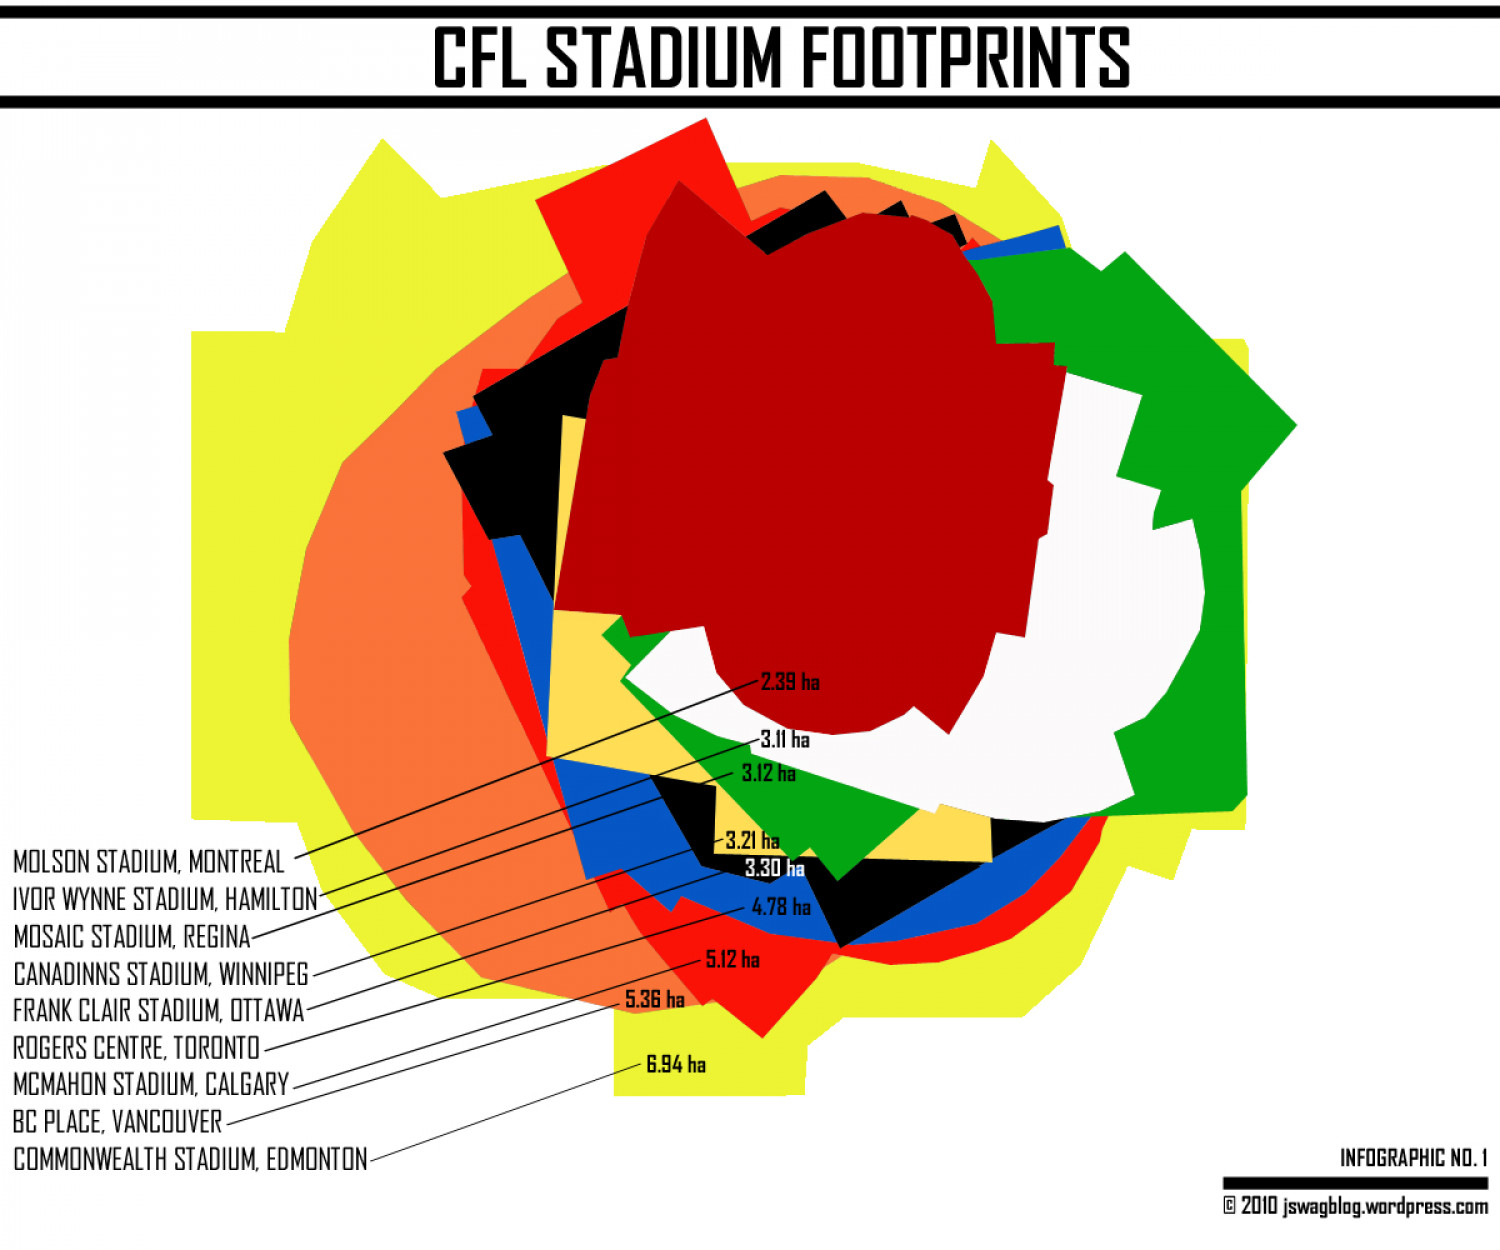 CFL Stadium Footprints Infographic